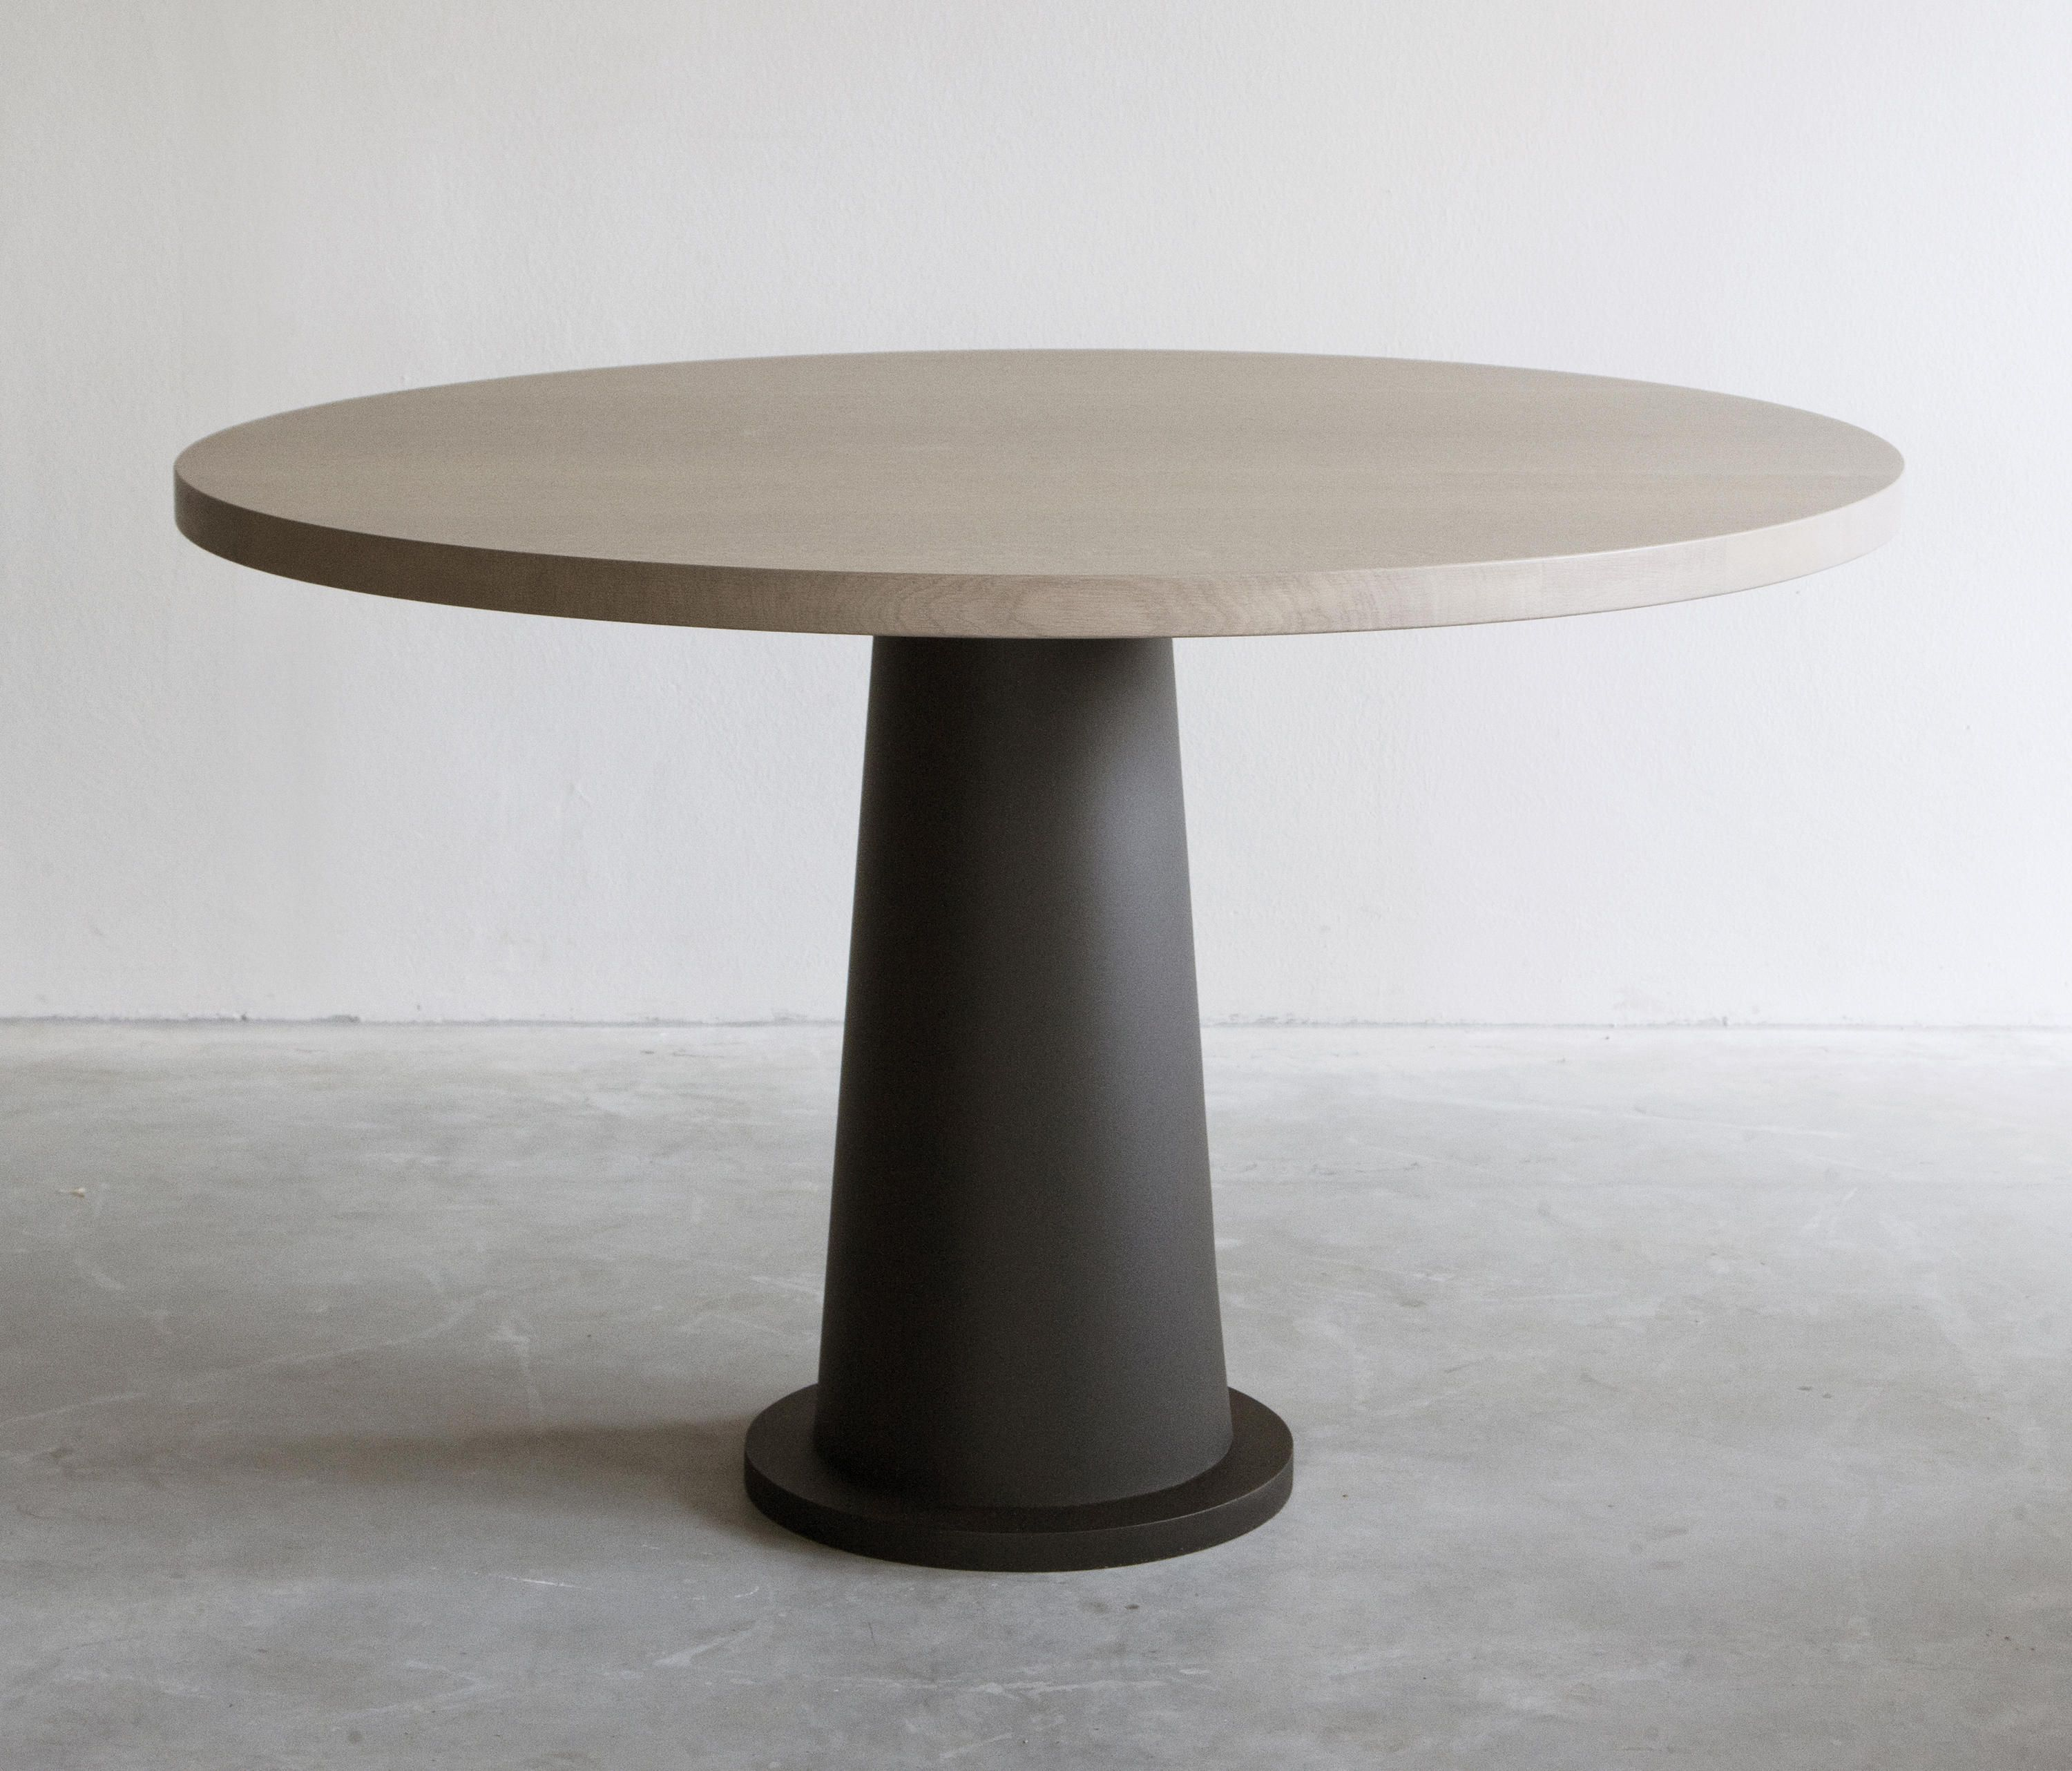 Kops Dining Table Round Metal Base Designer Dining Tables From